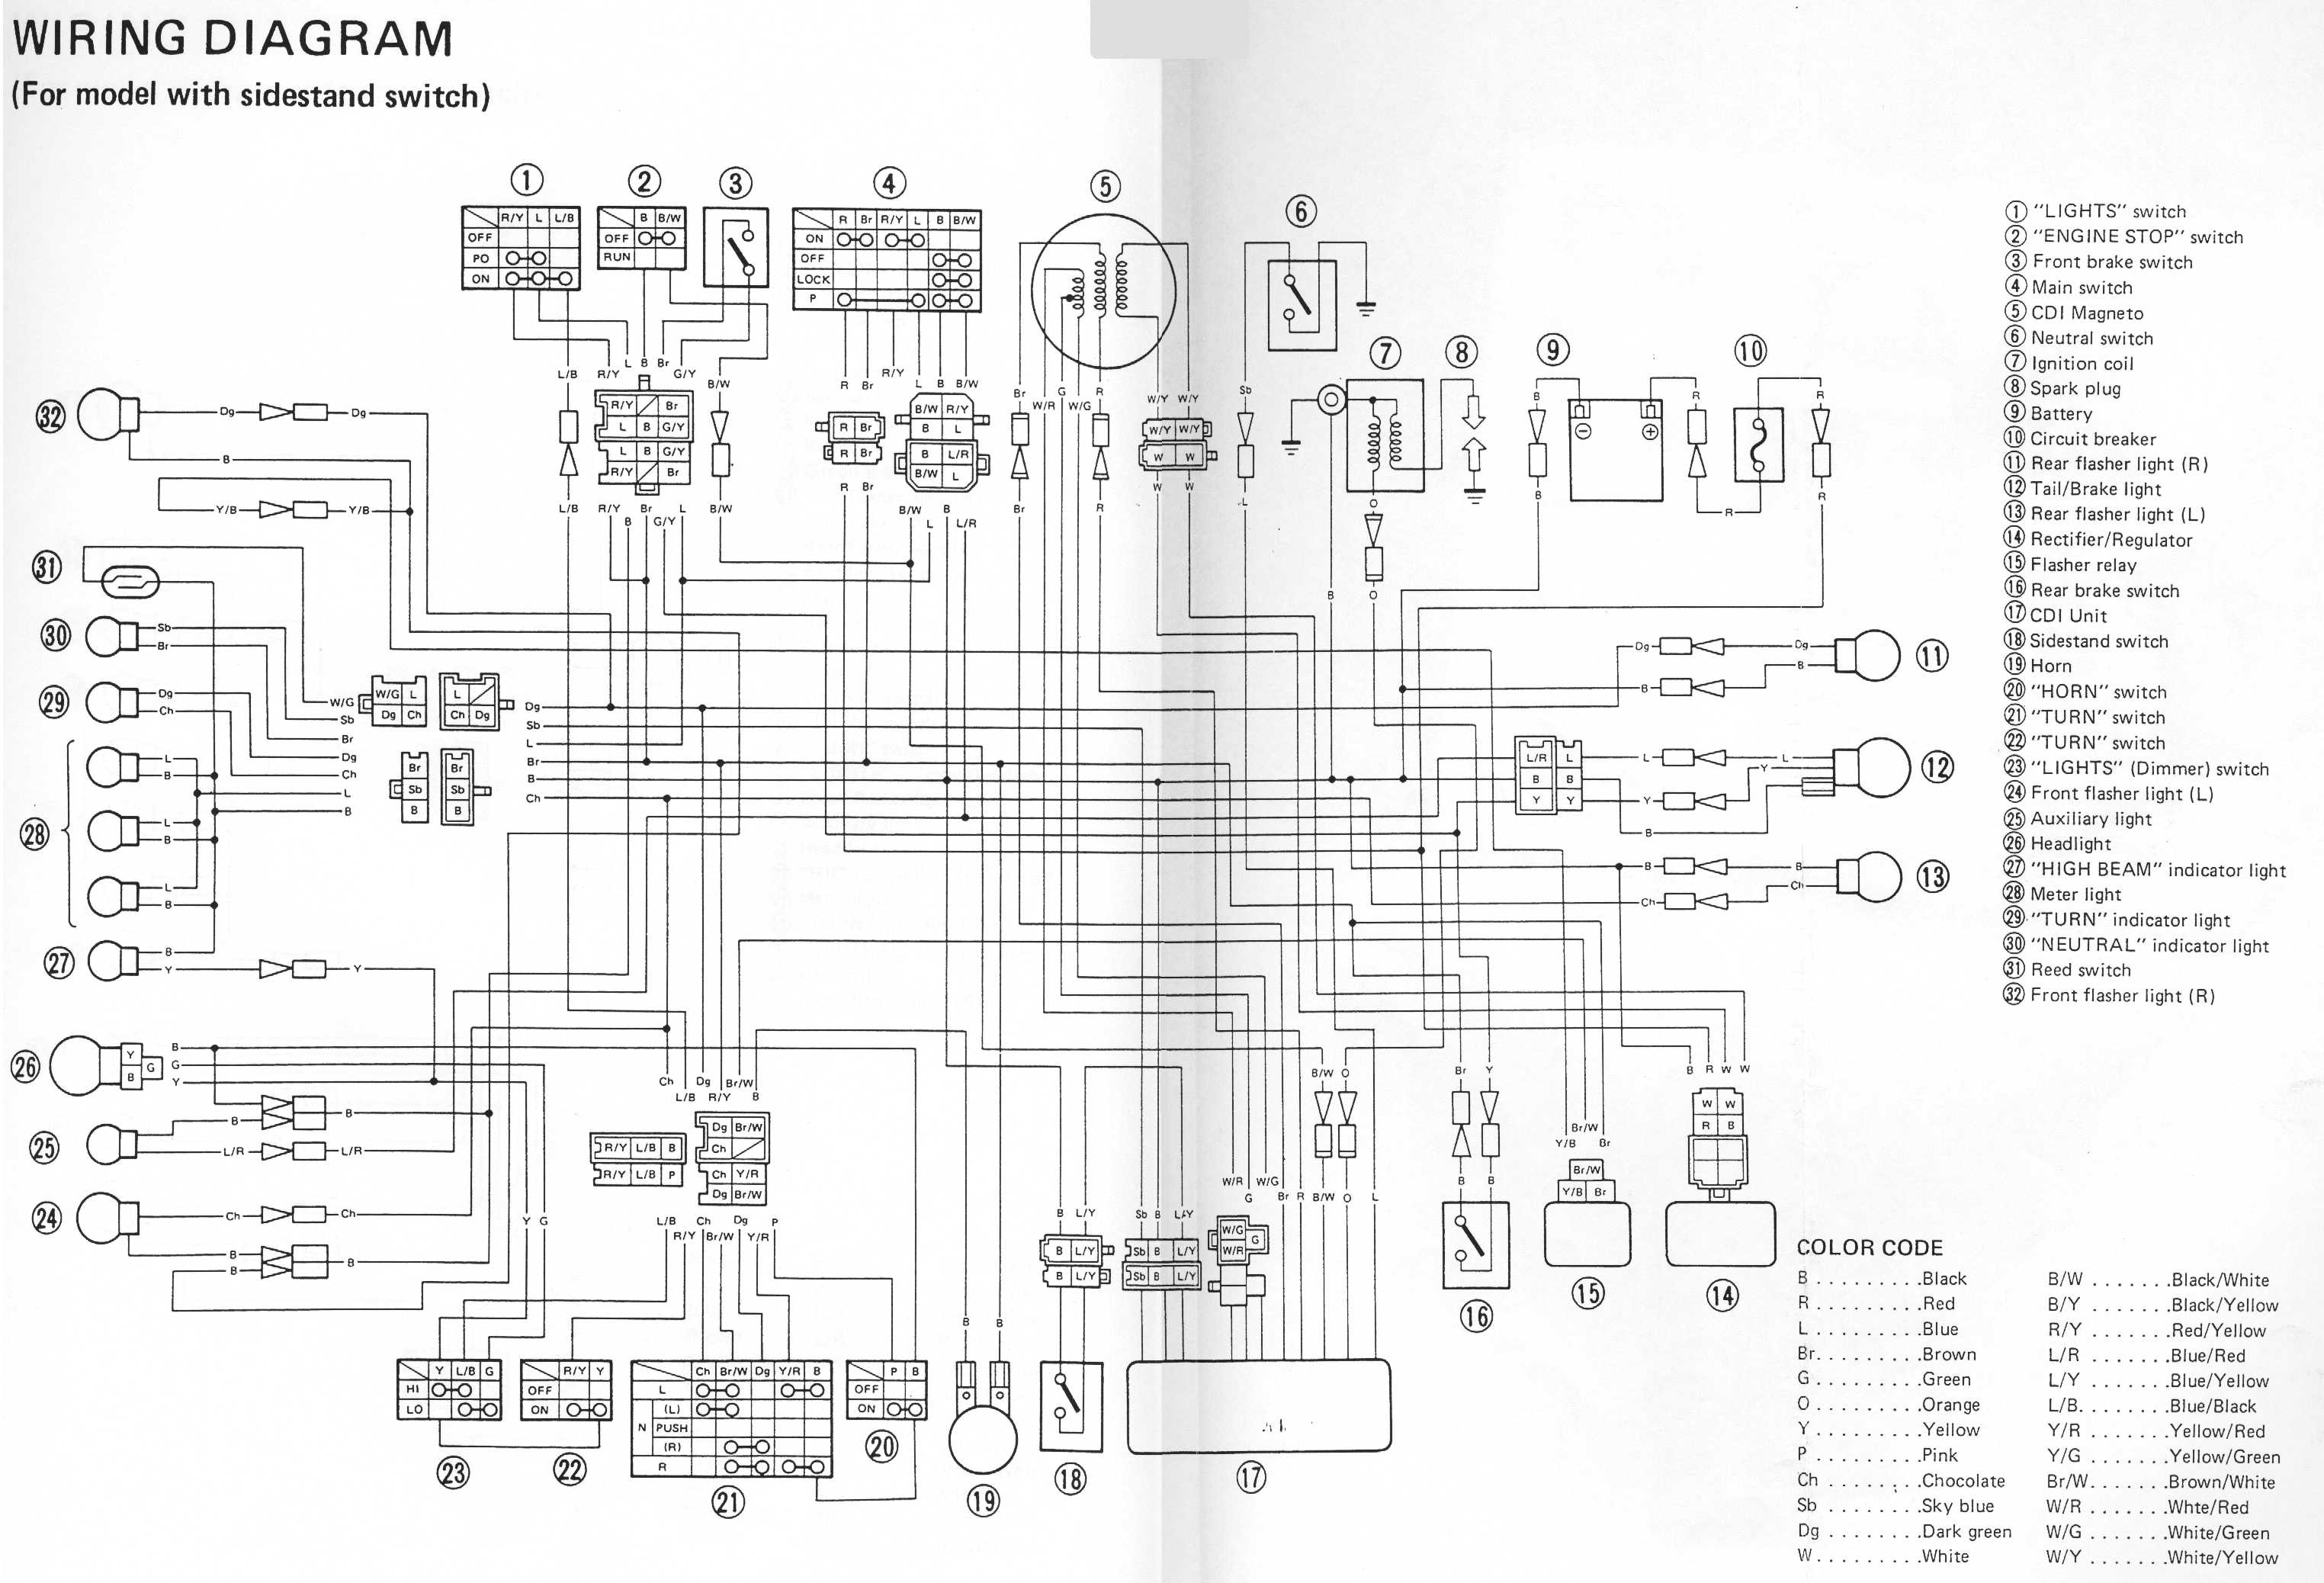 Yamaha_SRX6(4)_Wiring_Diagram Yamaha Phase Prong Rectifier Regulator Wiring Diagram on